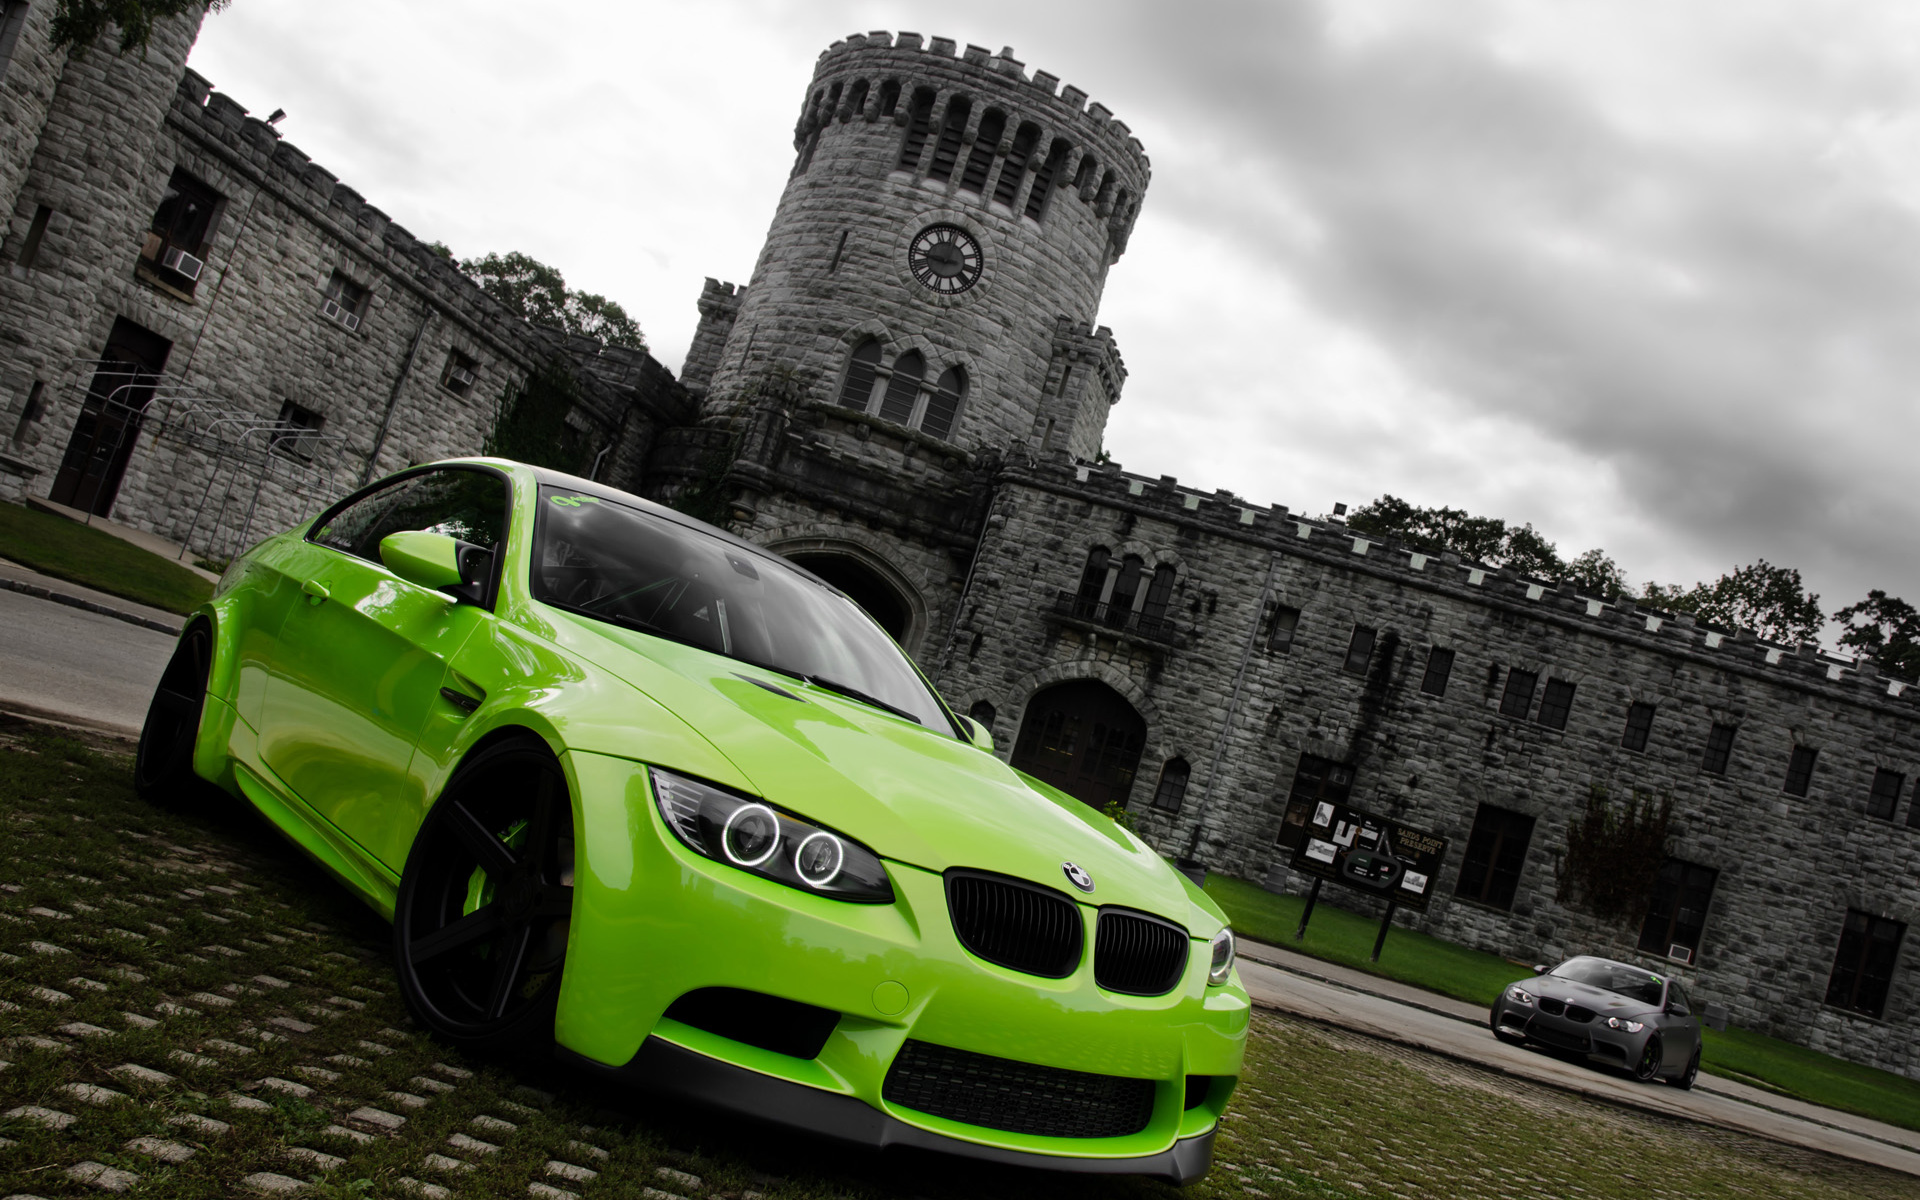 Cool Modified Cars Wallpapers Green Bmw M3 Wallpaper Hd Car Wallpapers Id 2576